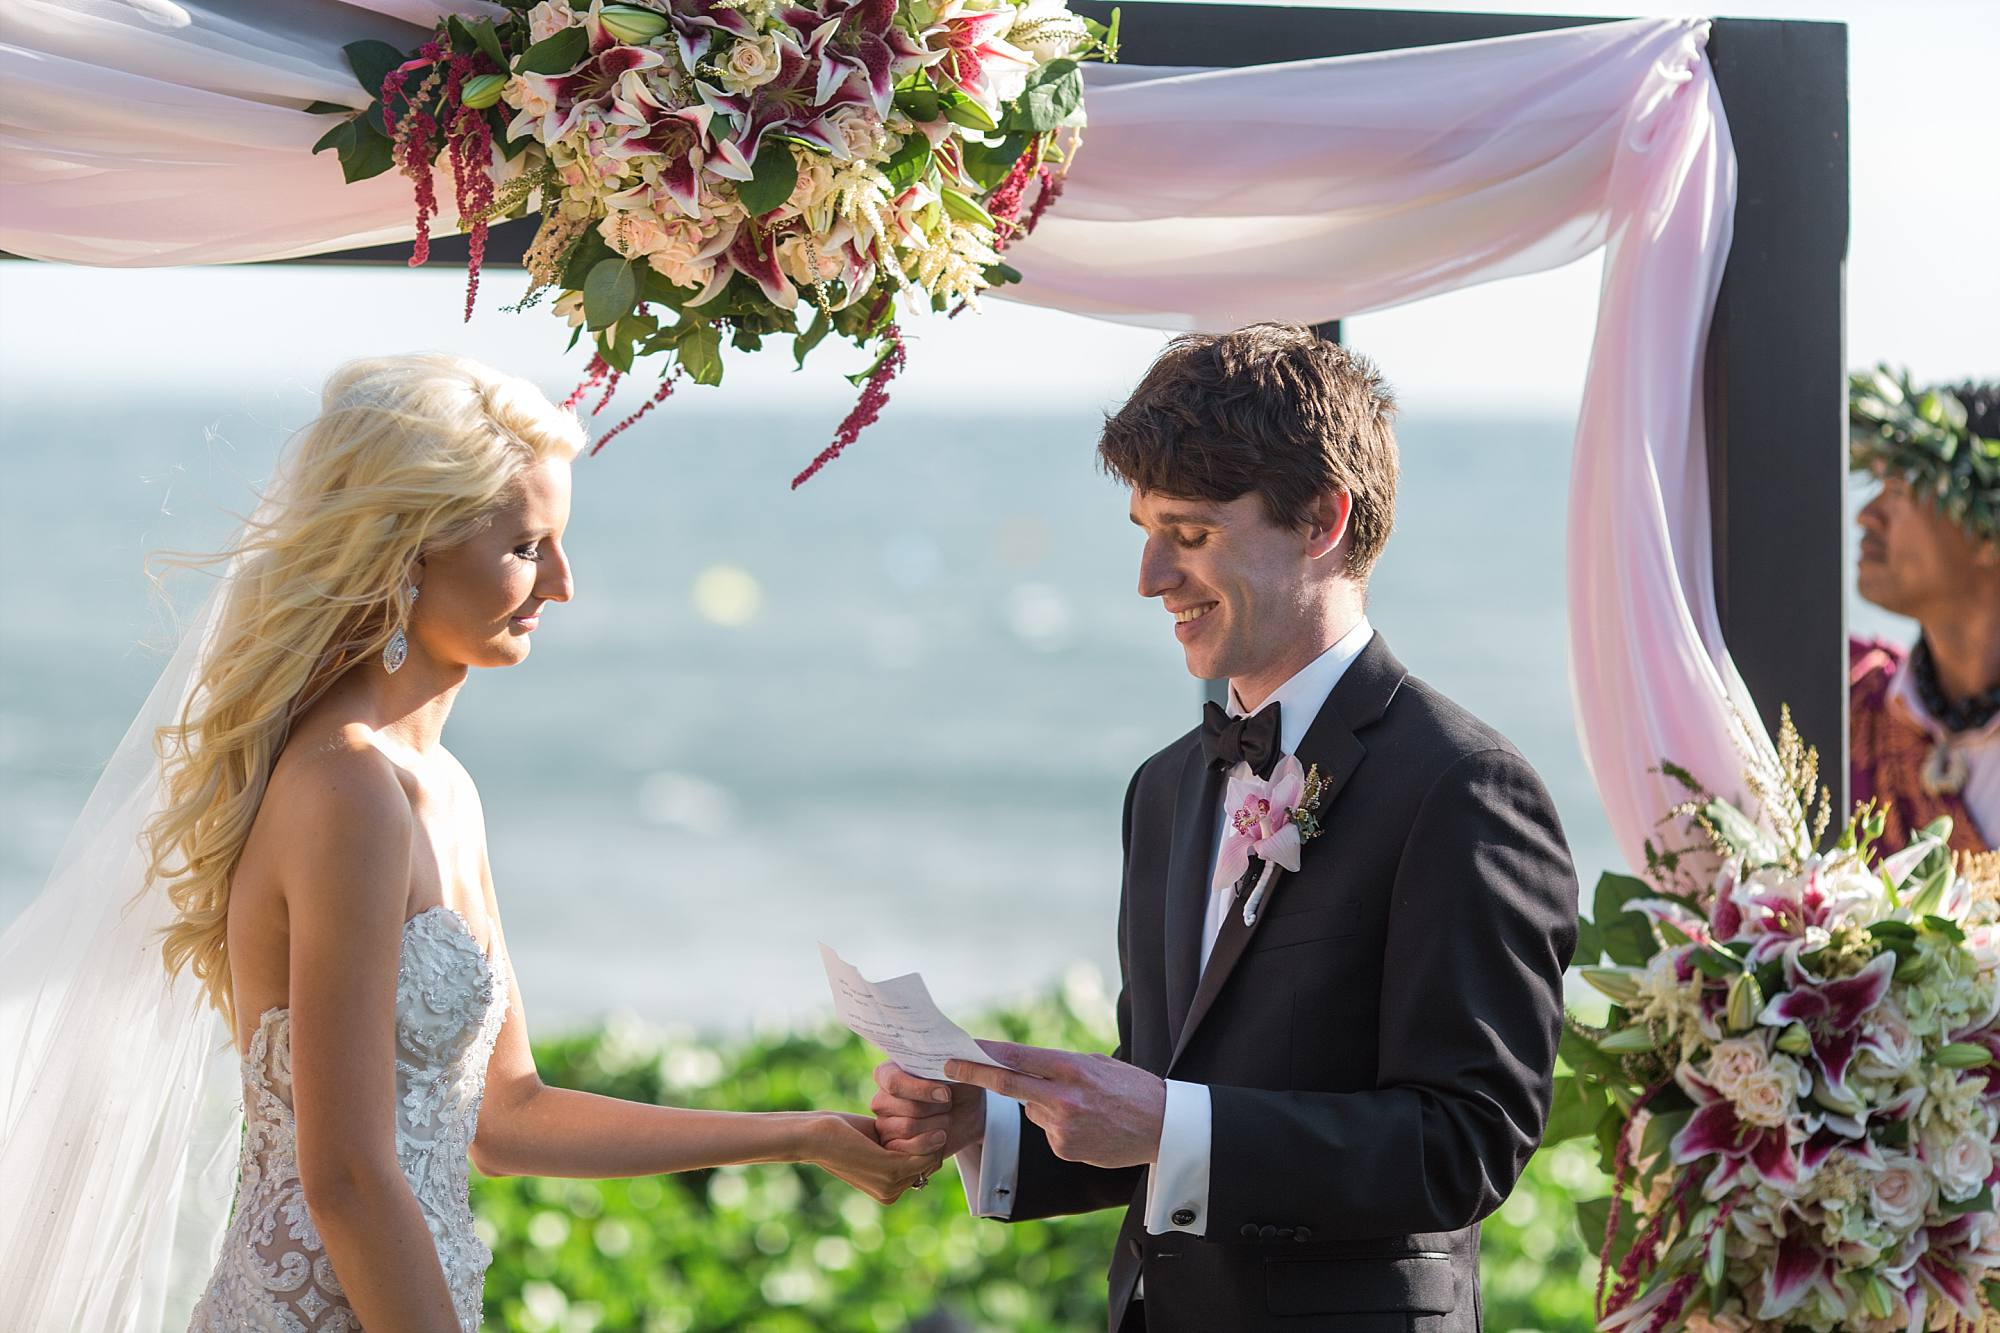 Groom reading his vows that he wrote himself, holding hands with his bride. The Pacific Ocean behind them